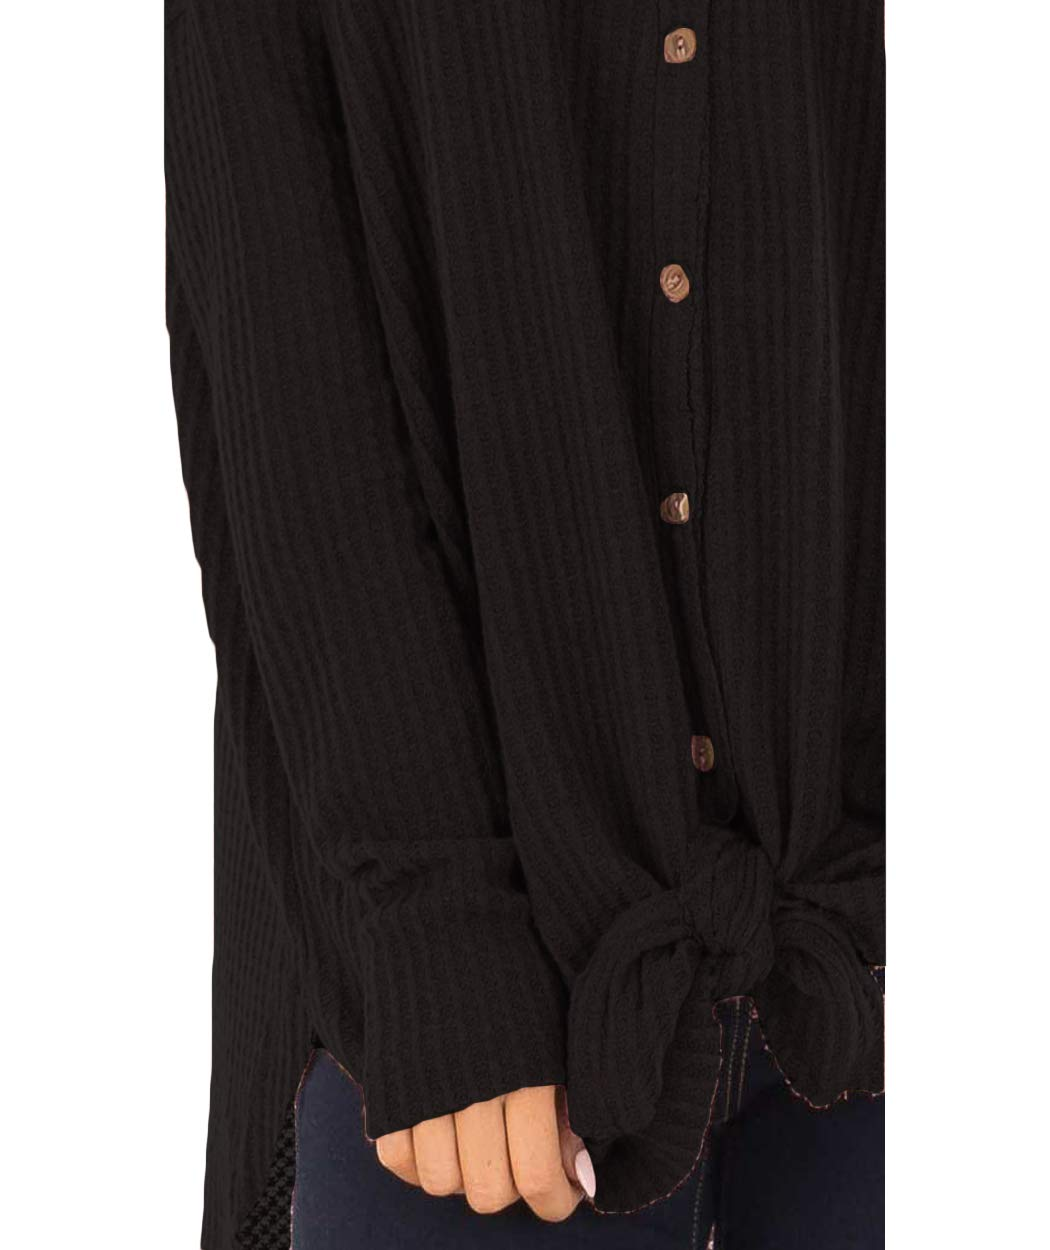 Eanklosco Tie Knot Tops Womens Waffle Knit V Neck Blouse Button Down Long Sleeve Henley Shirt (Black, M)